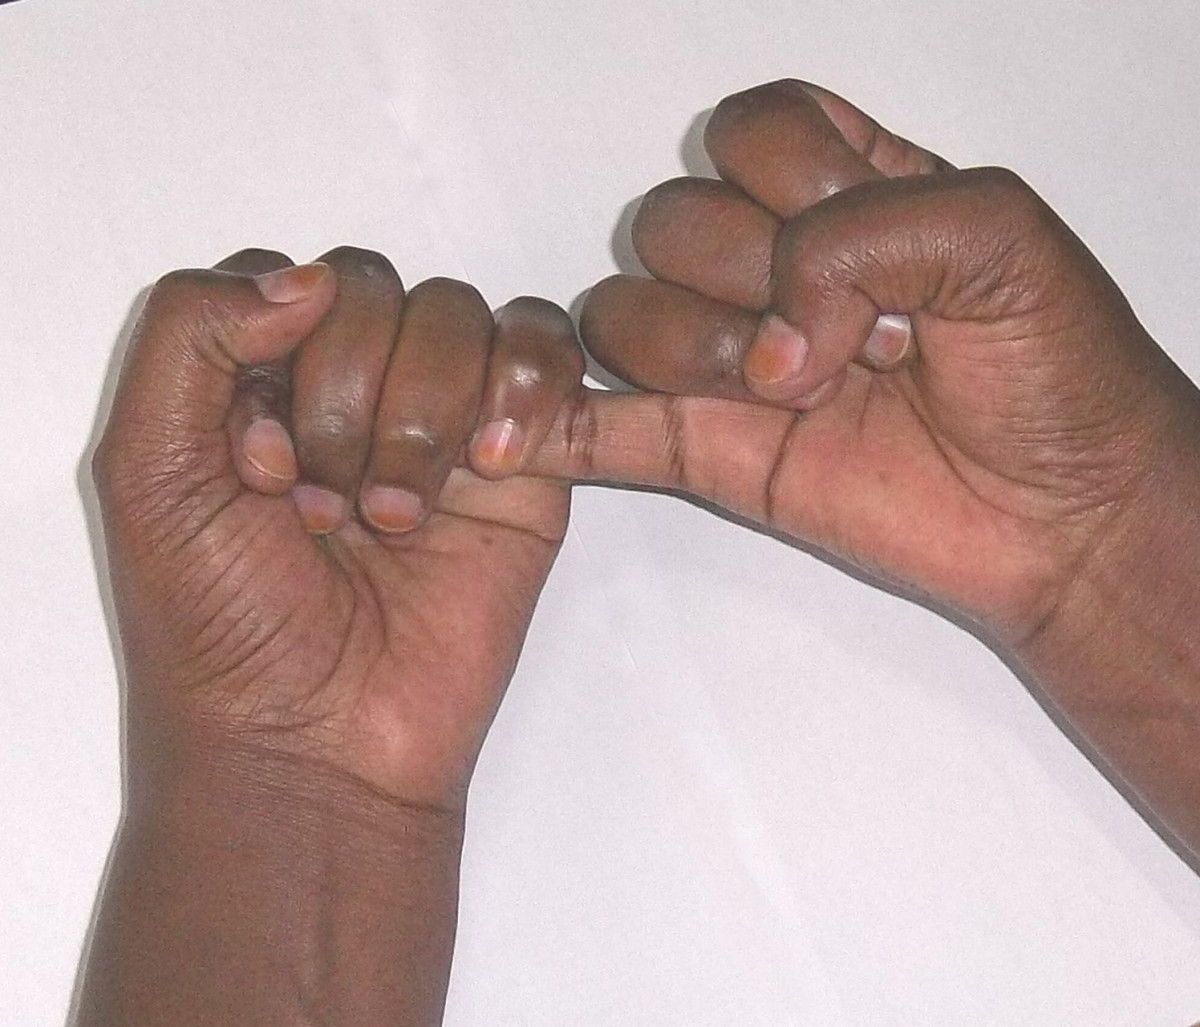 Kikuyu sign language for 6